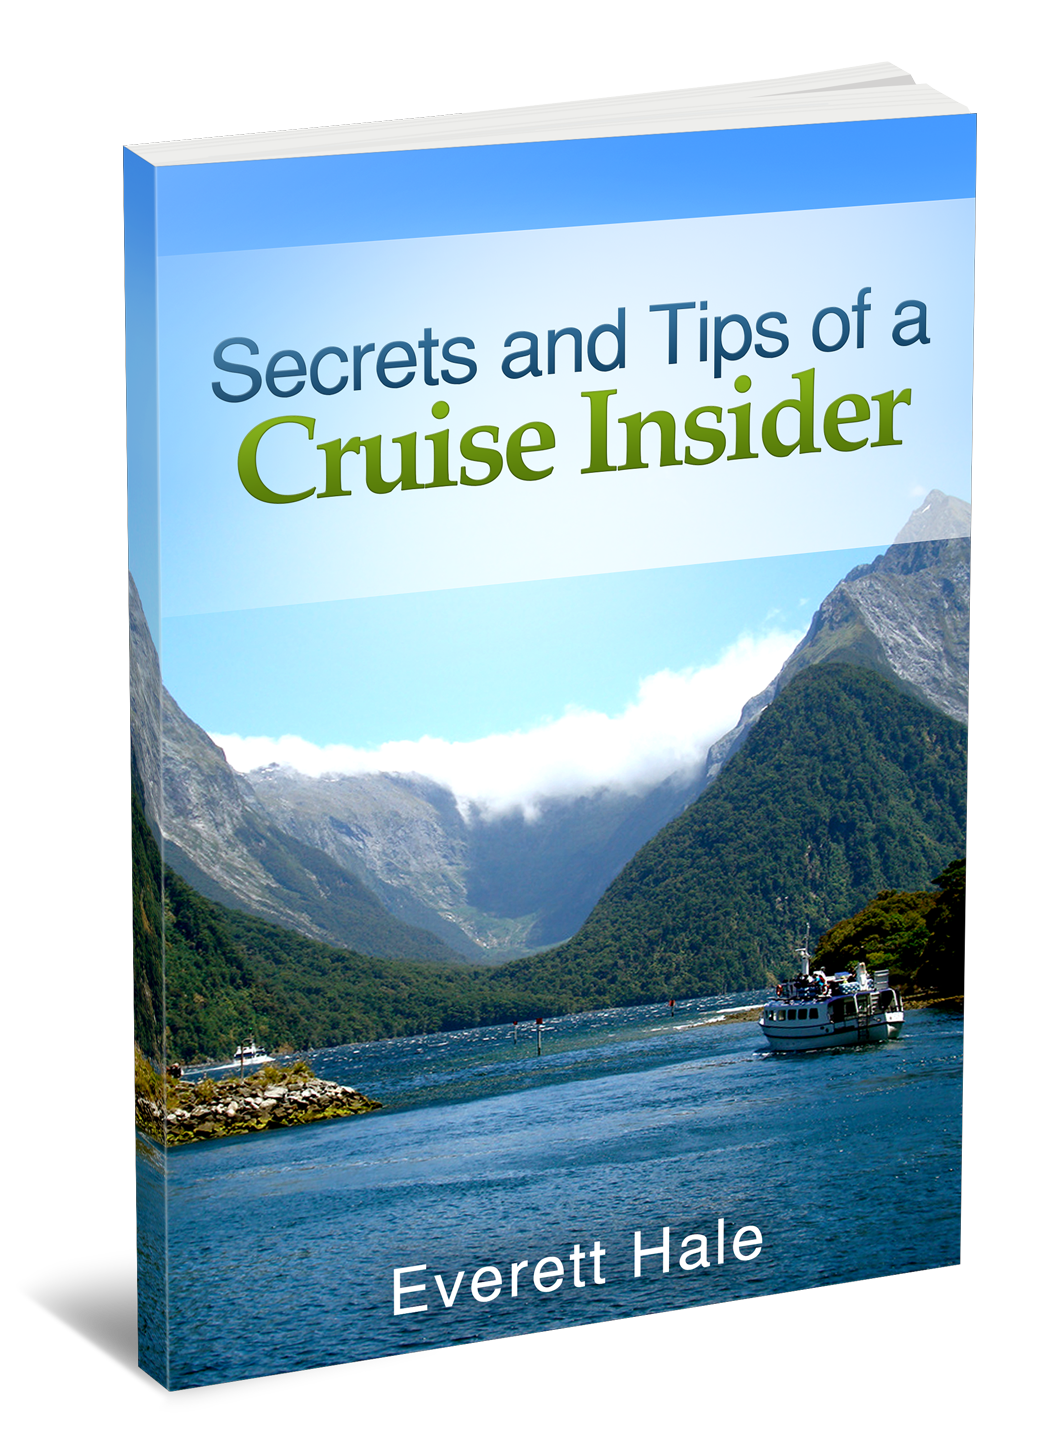 Secrets and Tips of a Cruise Insider